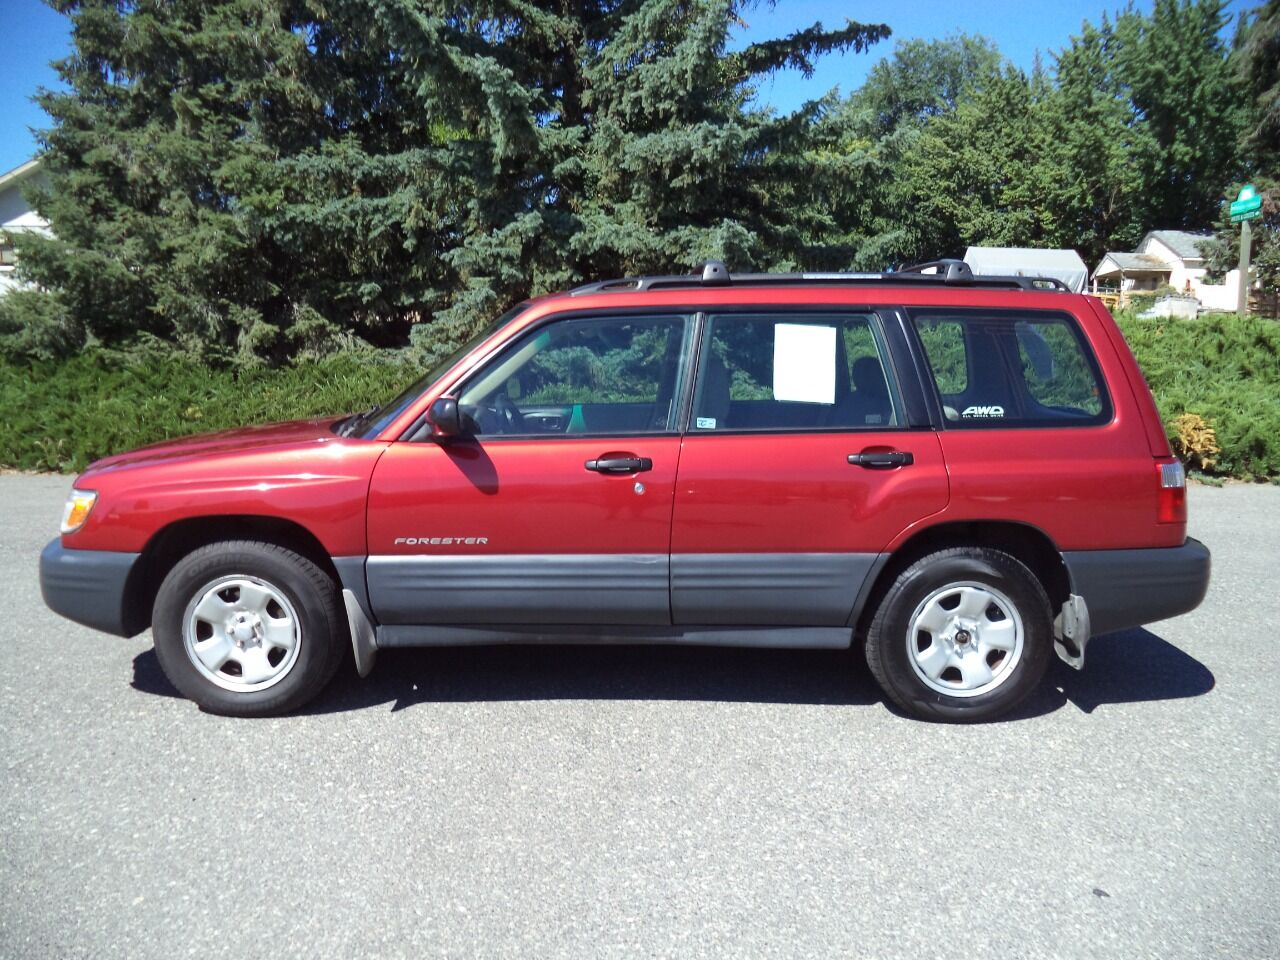 used 2001 subaru forester for sale carsforsale com used 2001 subaru forester for sale